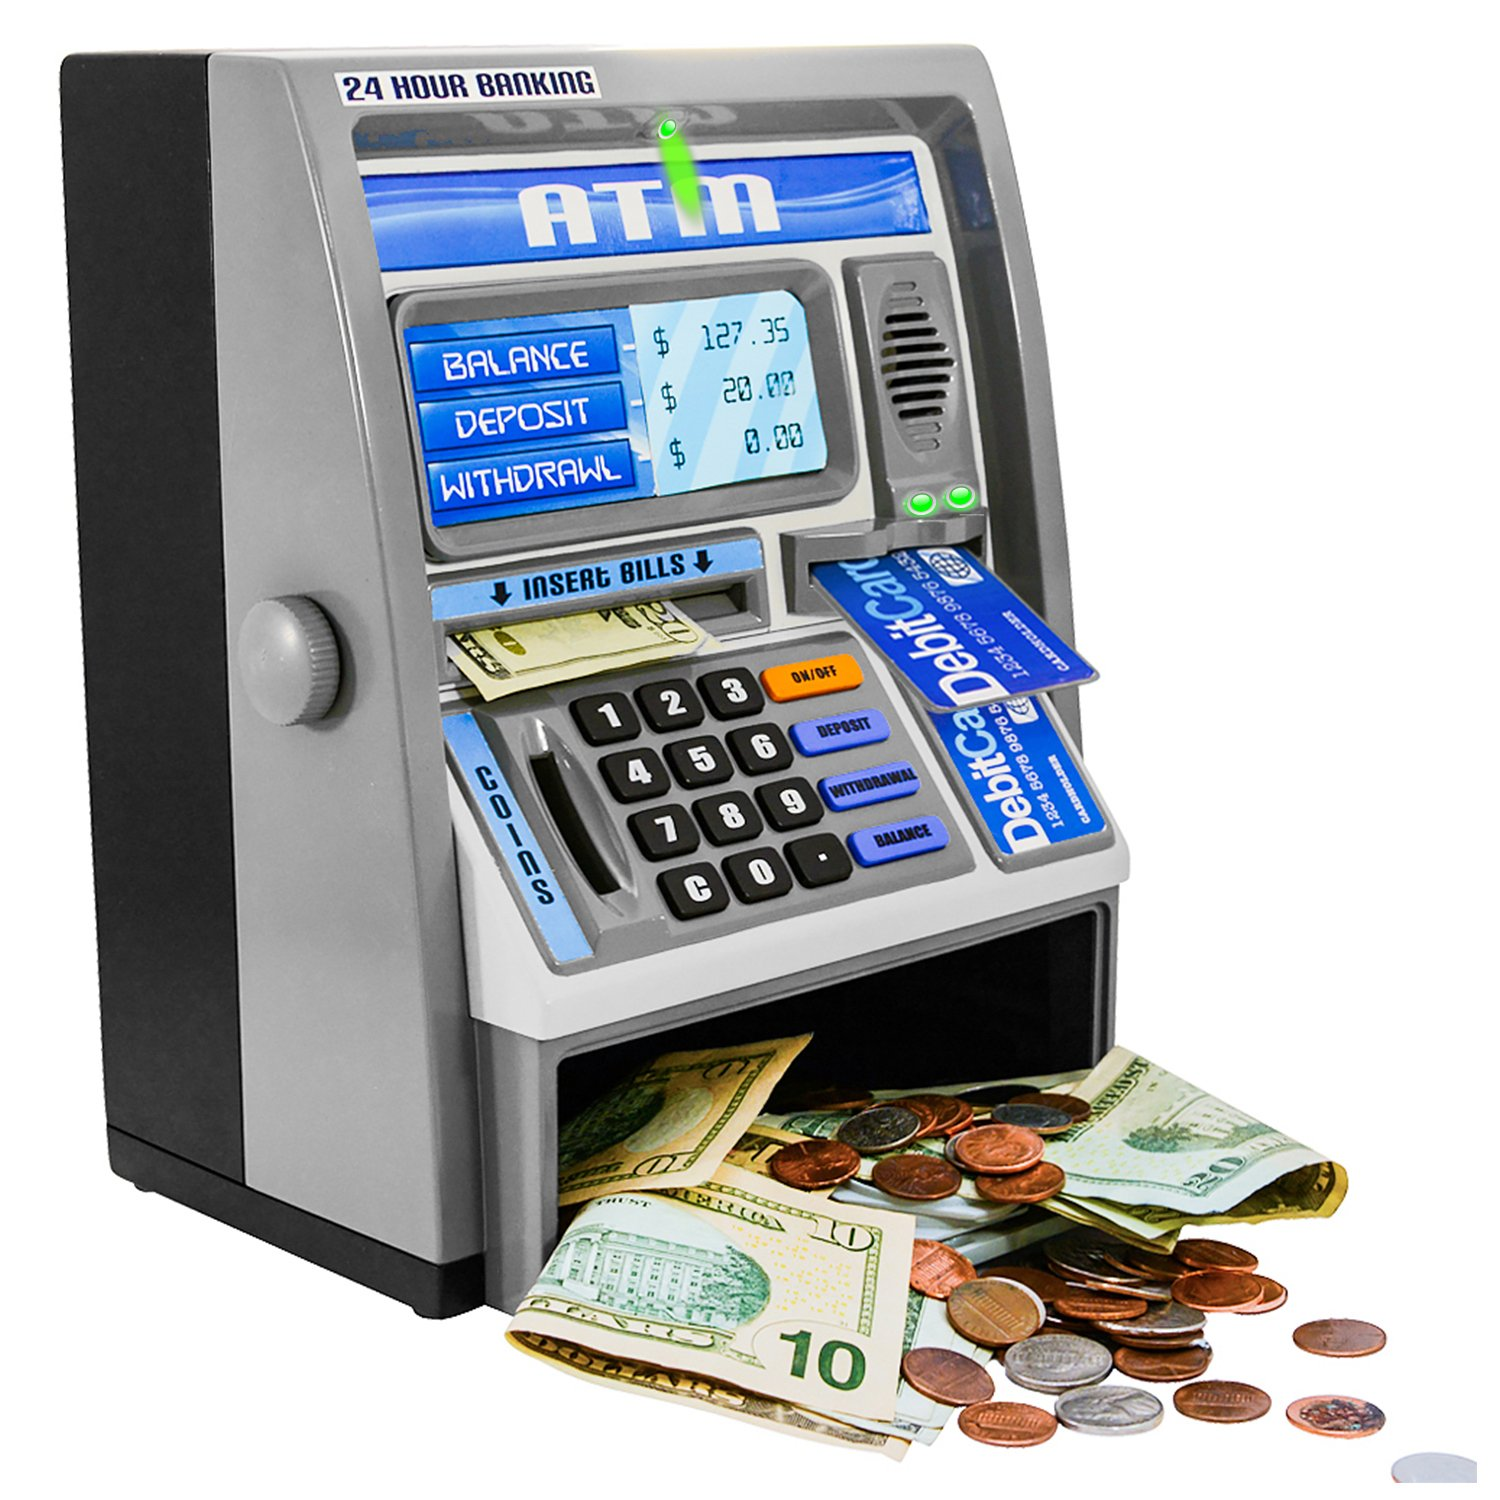 Ben Franklin Toys Kids Talking ATM Machine Savings Piggy Bank with Digital Screen, Electronic Calculator That Counts Real Money, and Safe Box for Kids, Silver by Ben Franklin Toys